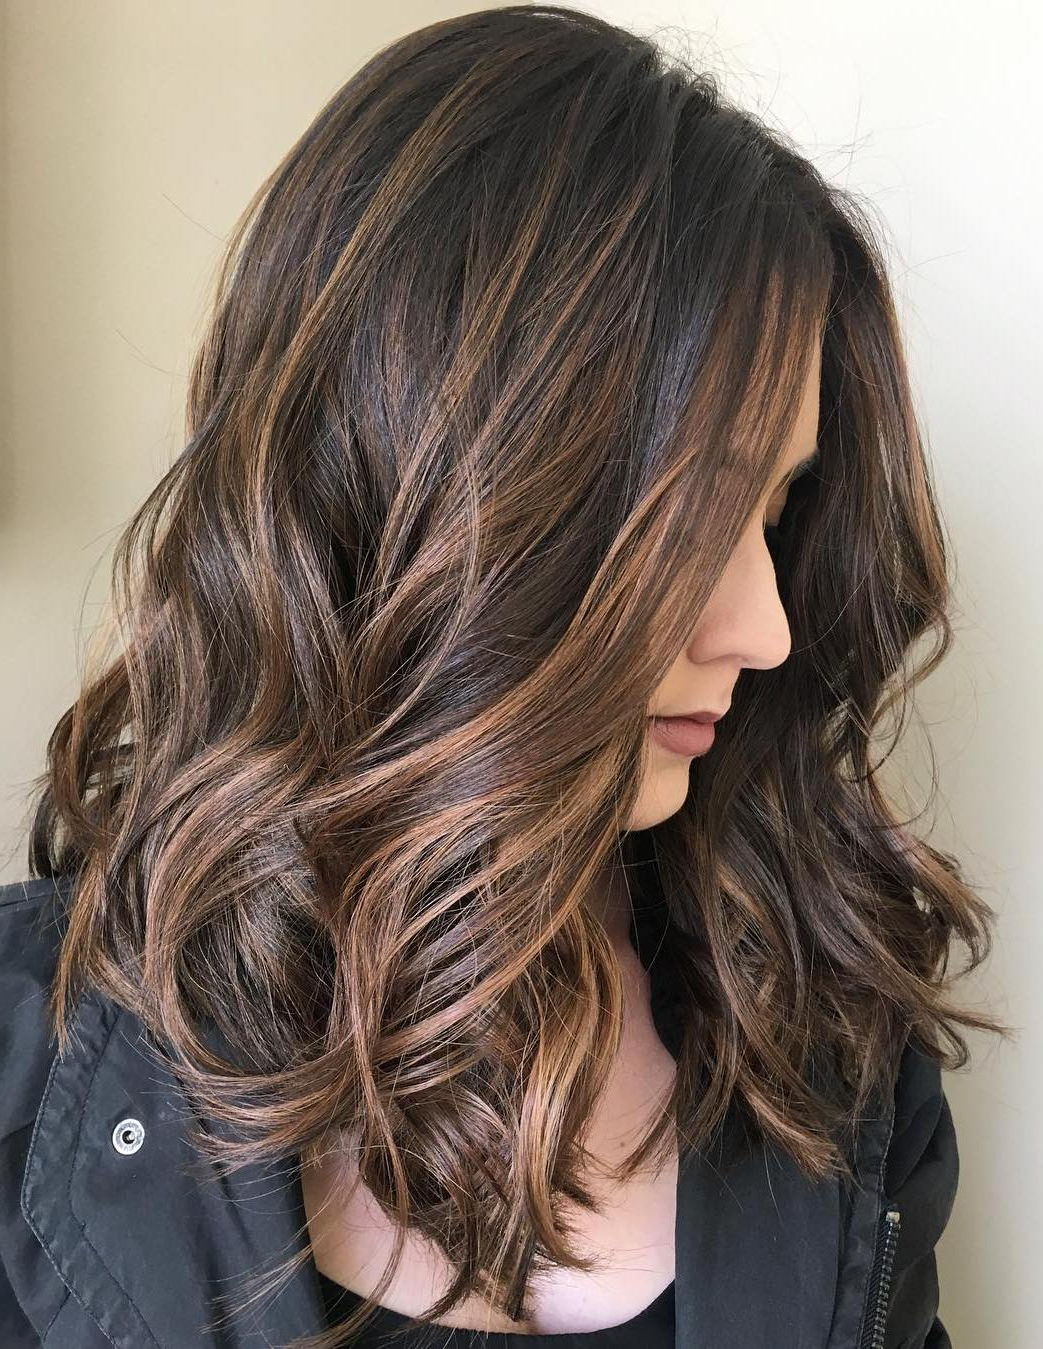 2019 Reddish Brown Hairstyles With Long V Cut Layers Regarding 70 Balayage Hair Color Ideas With Blonde, Brown And Caramel Highlights (View 5 of 20)